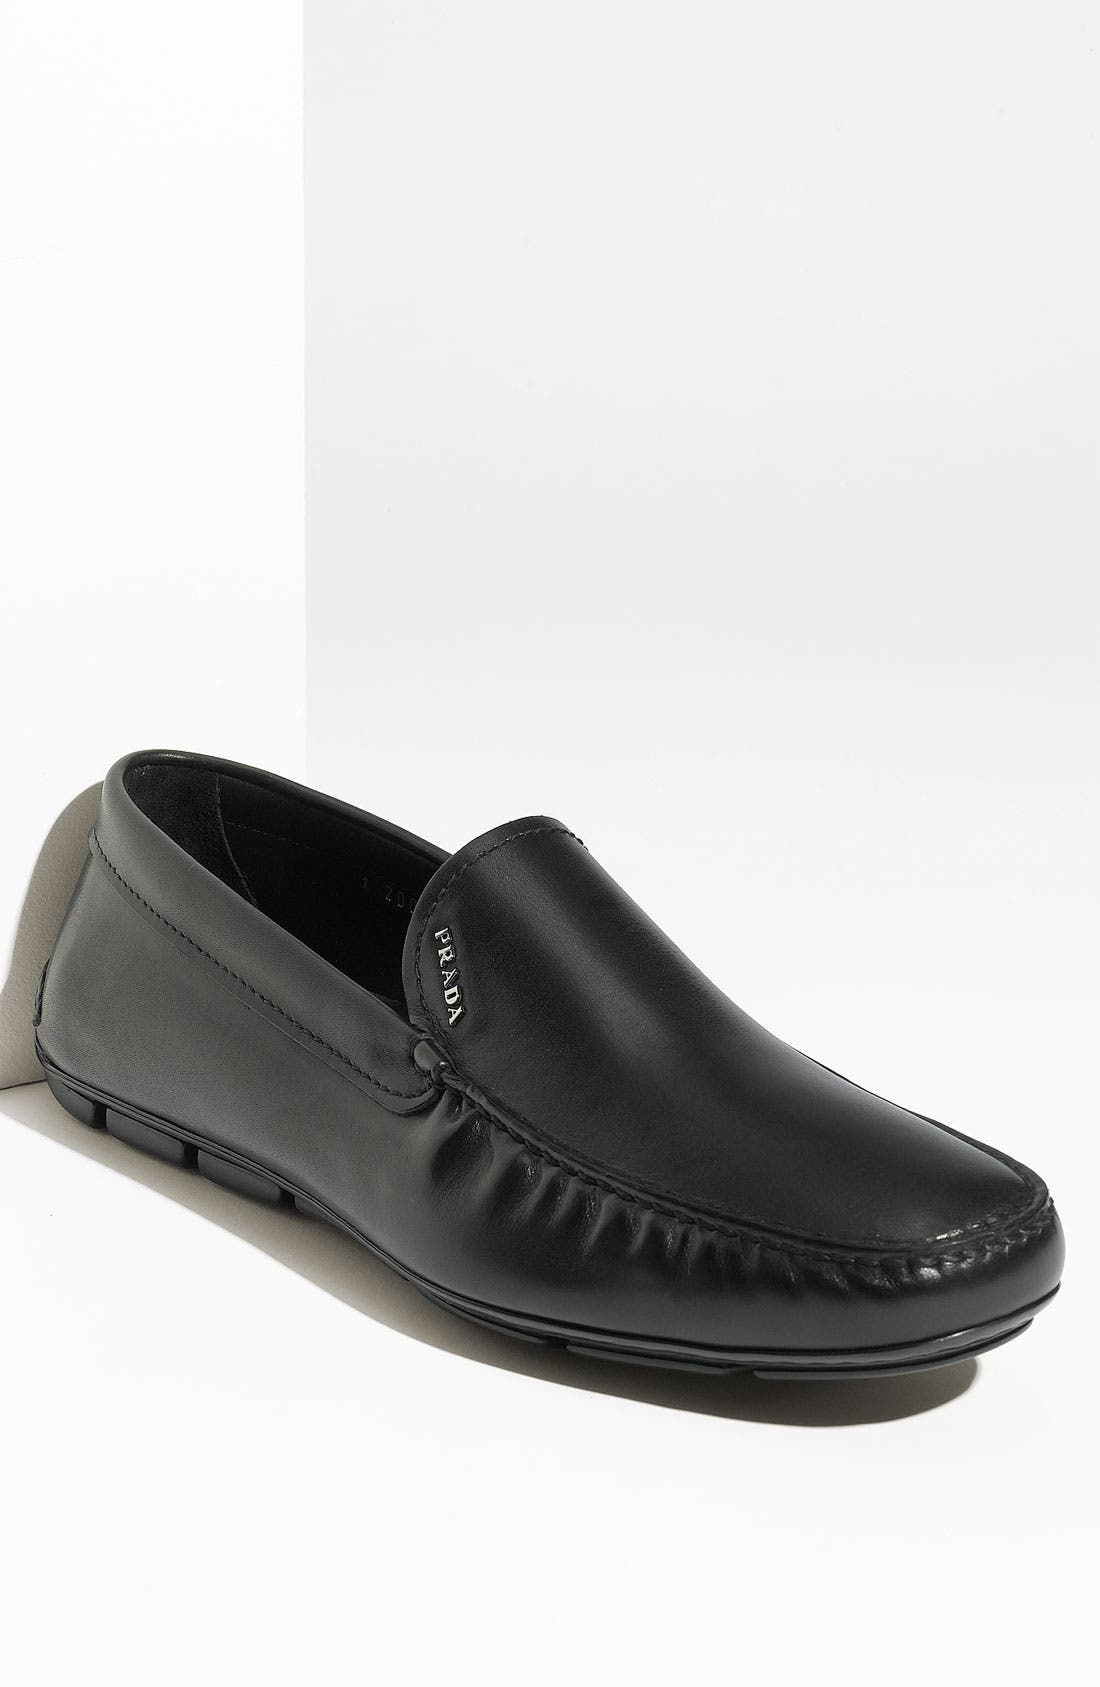 Alternate Image 1 Selected - Prada Leather Driving Shoe (Men)